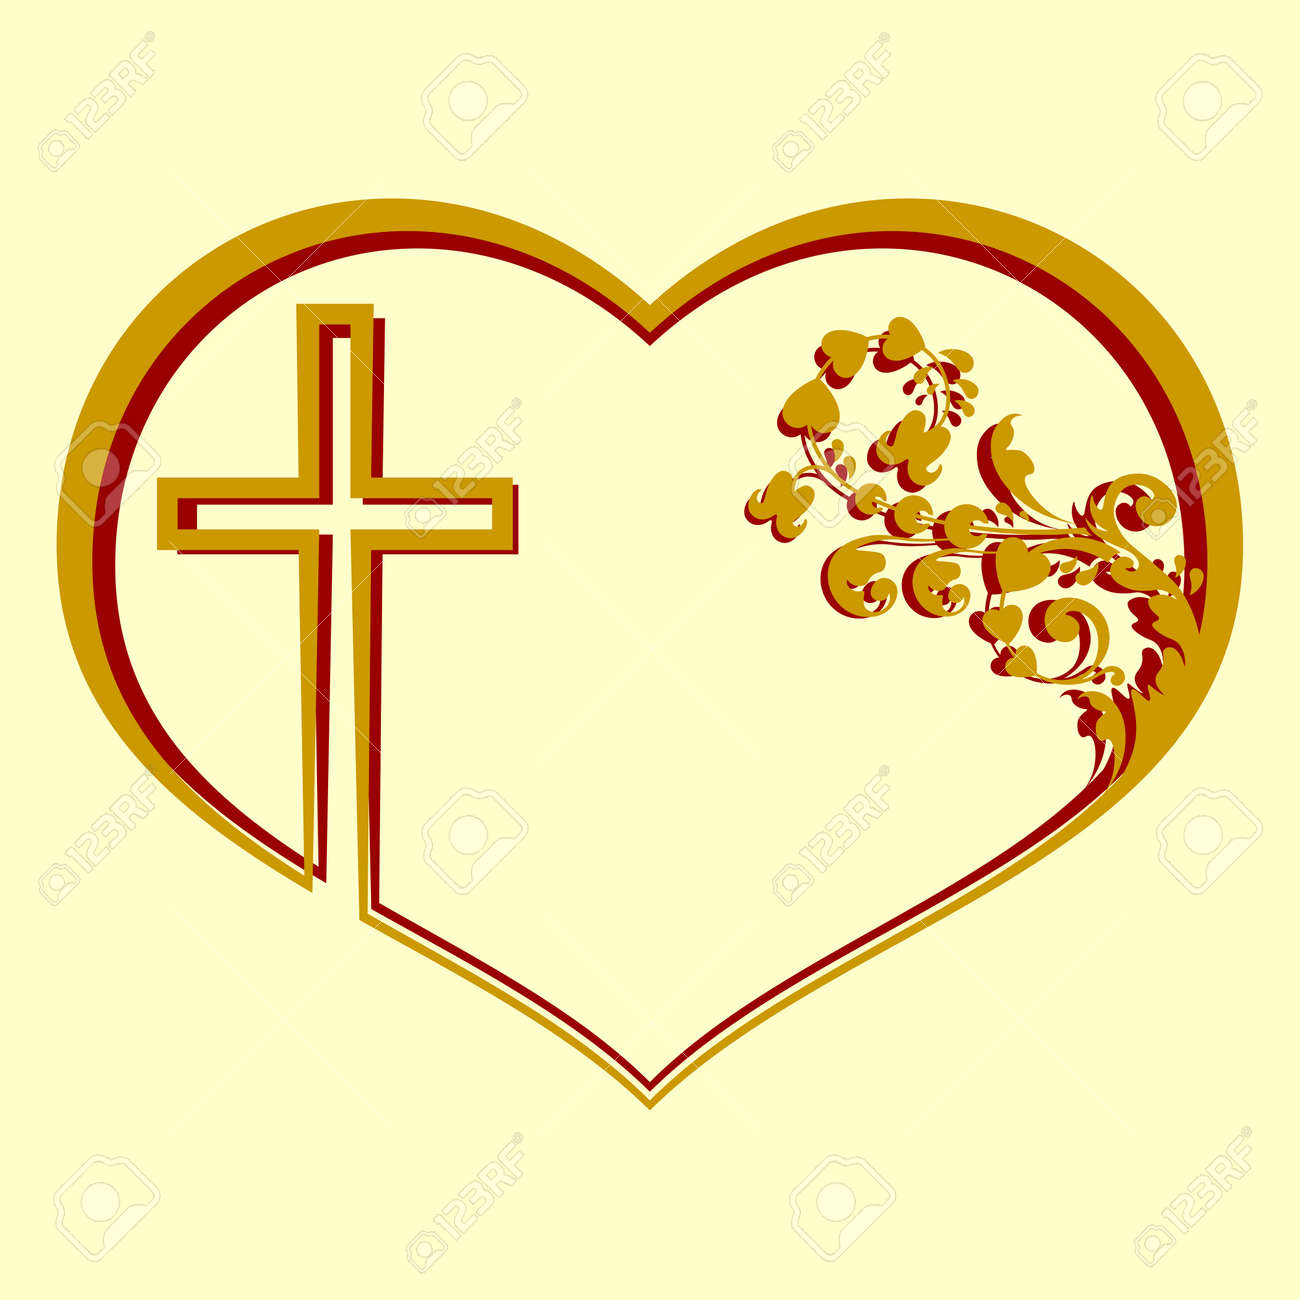 silhouette of heart with a cross and pattern stock photo picture